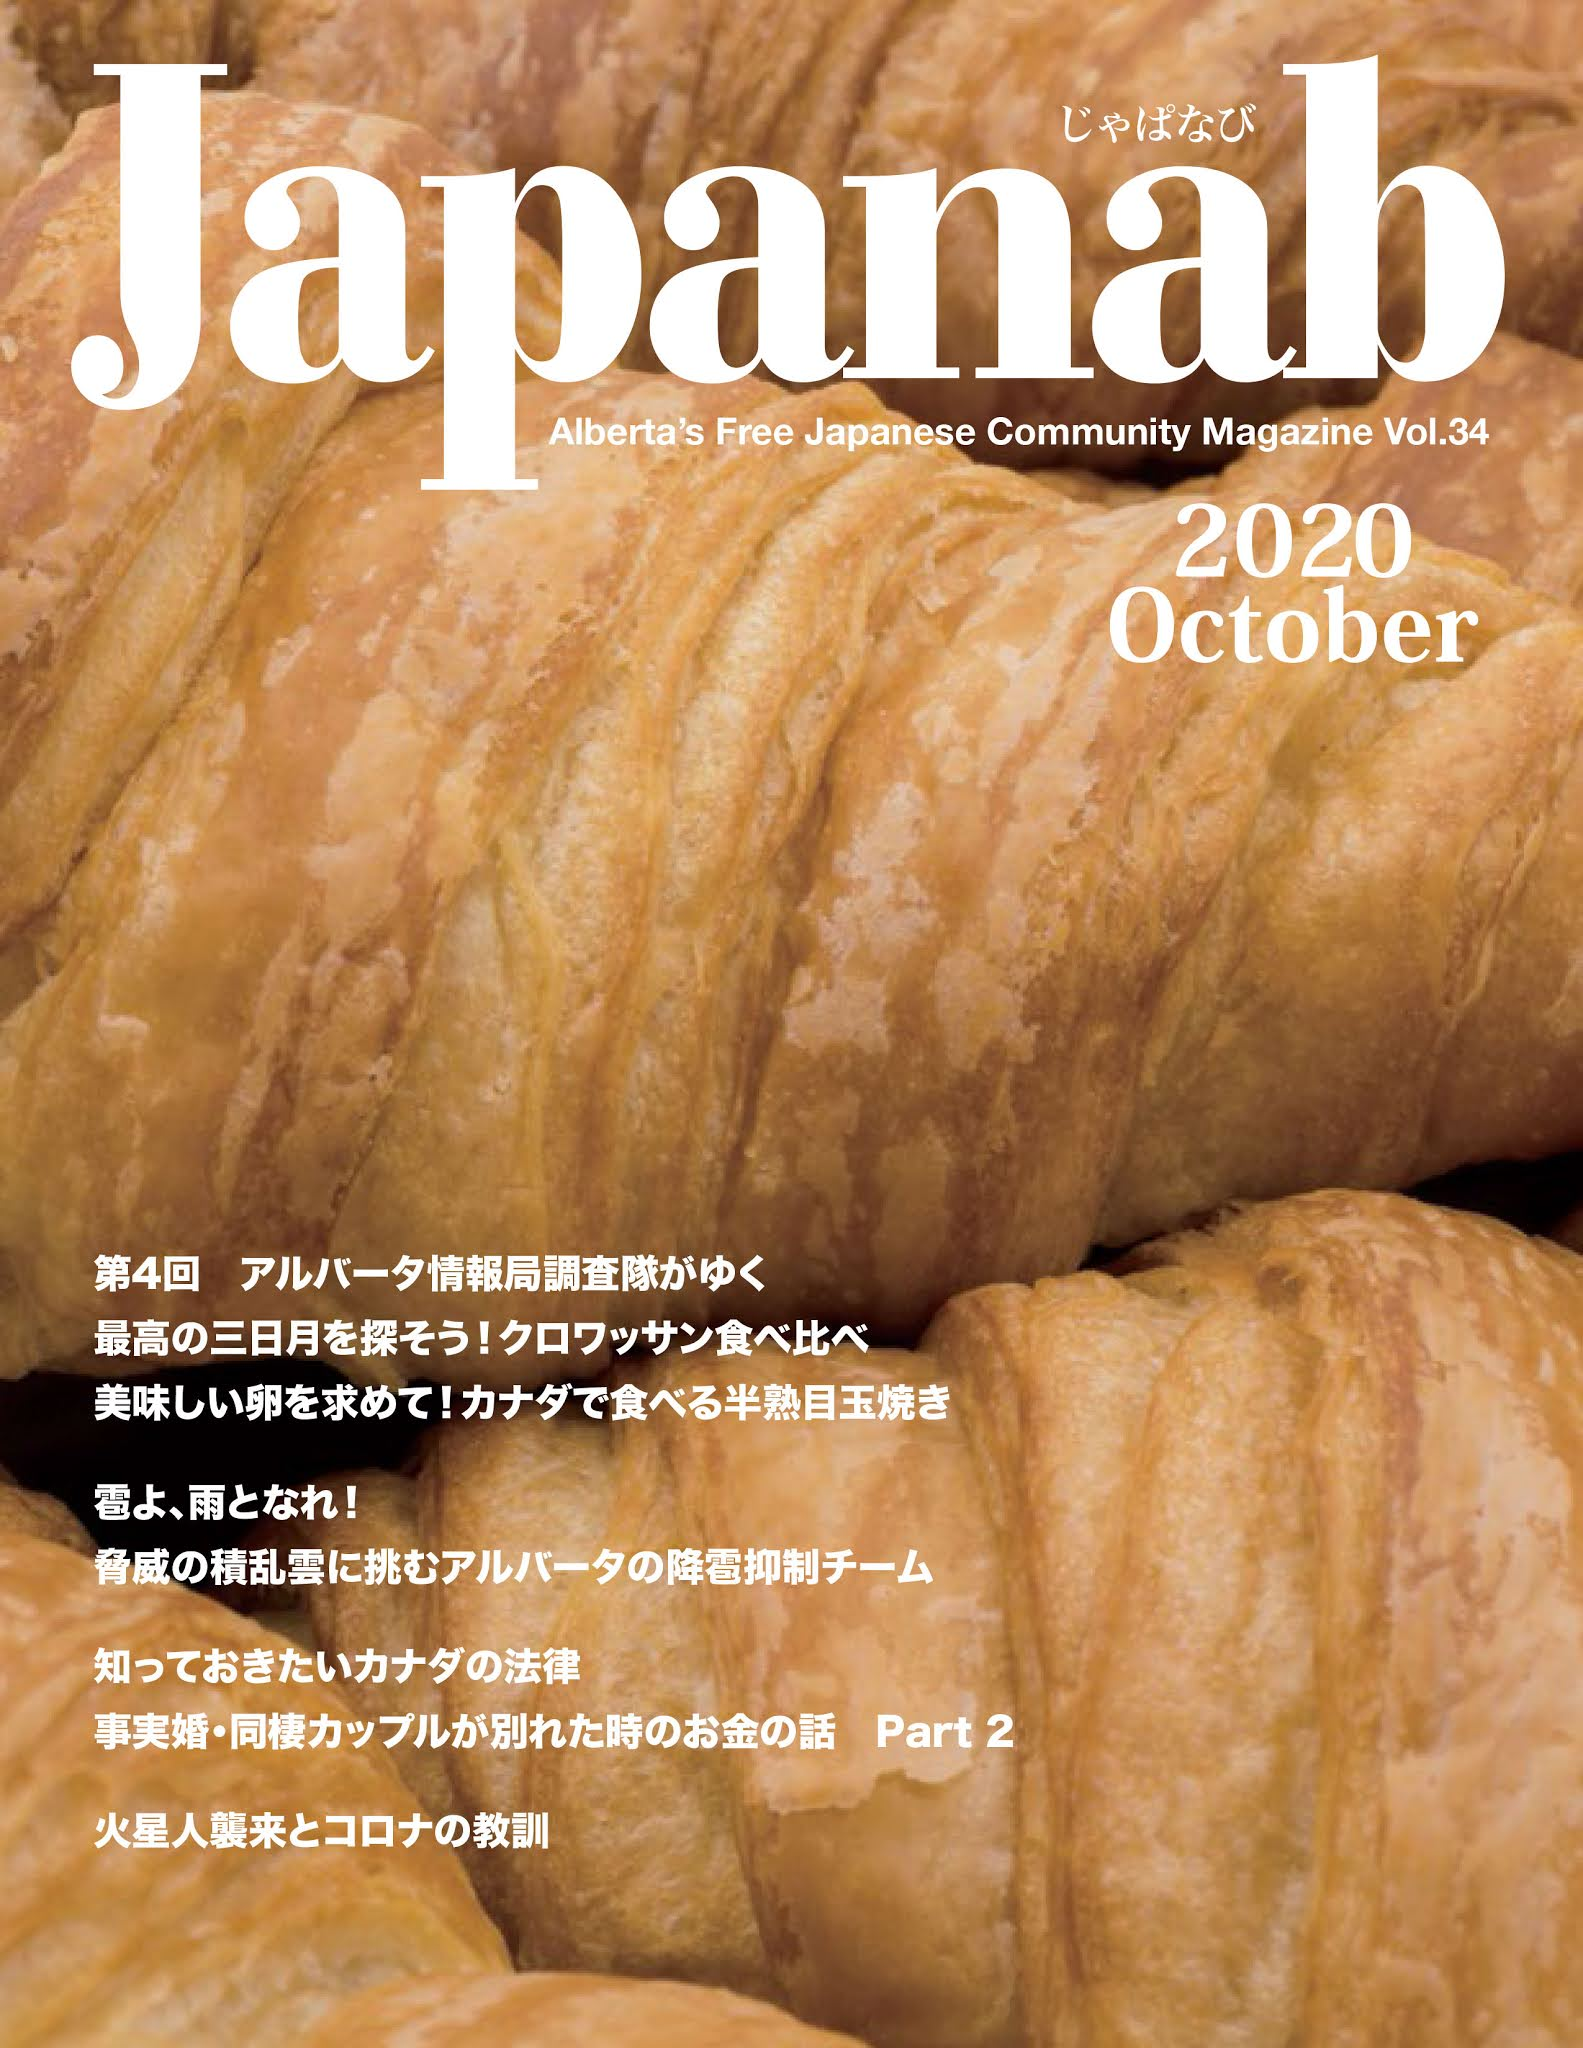 Japanab Vol. 33 - 2020 October